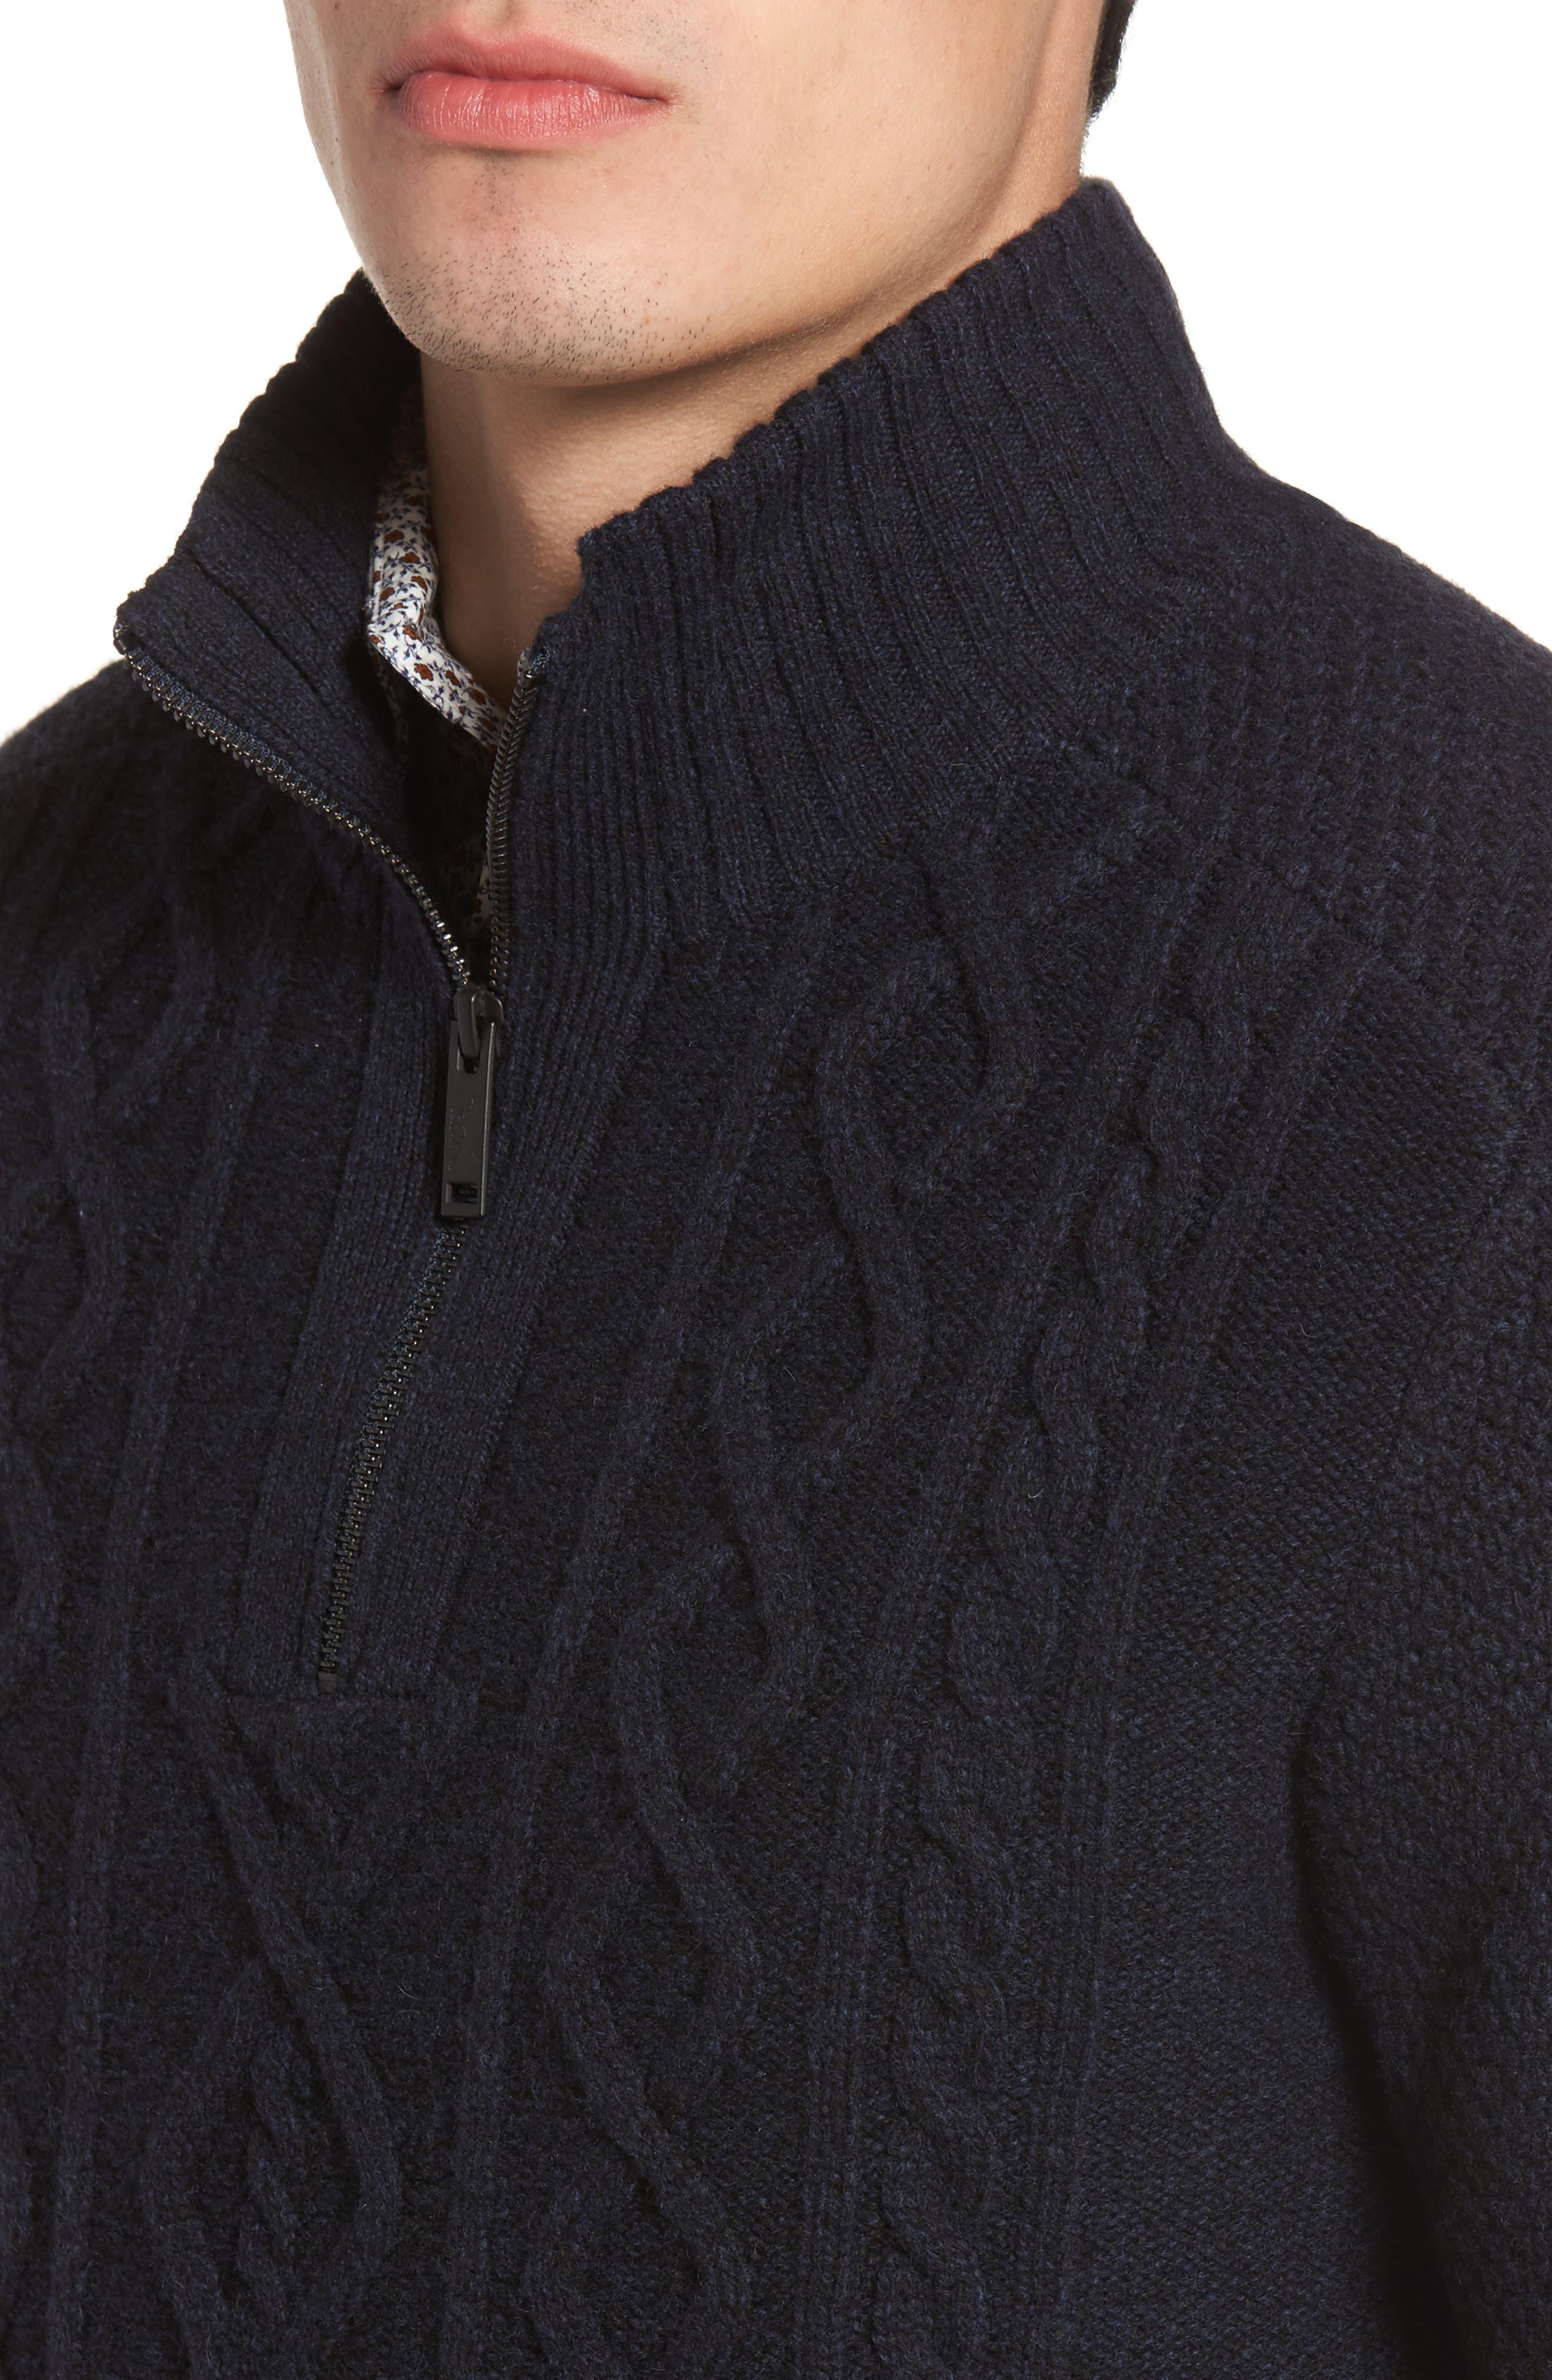 Cape Scoresby Wool Sweater,                             Alternate thumbnail 4, color,                             Navy